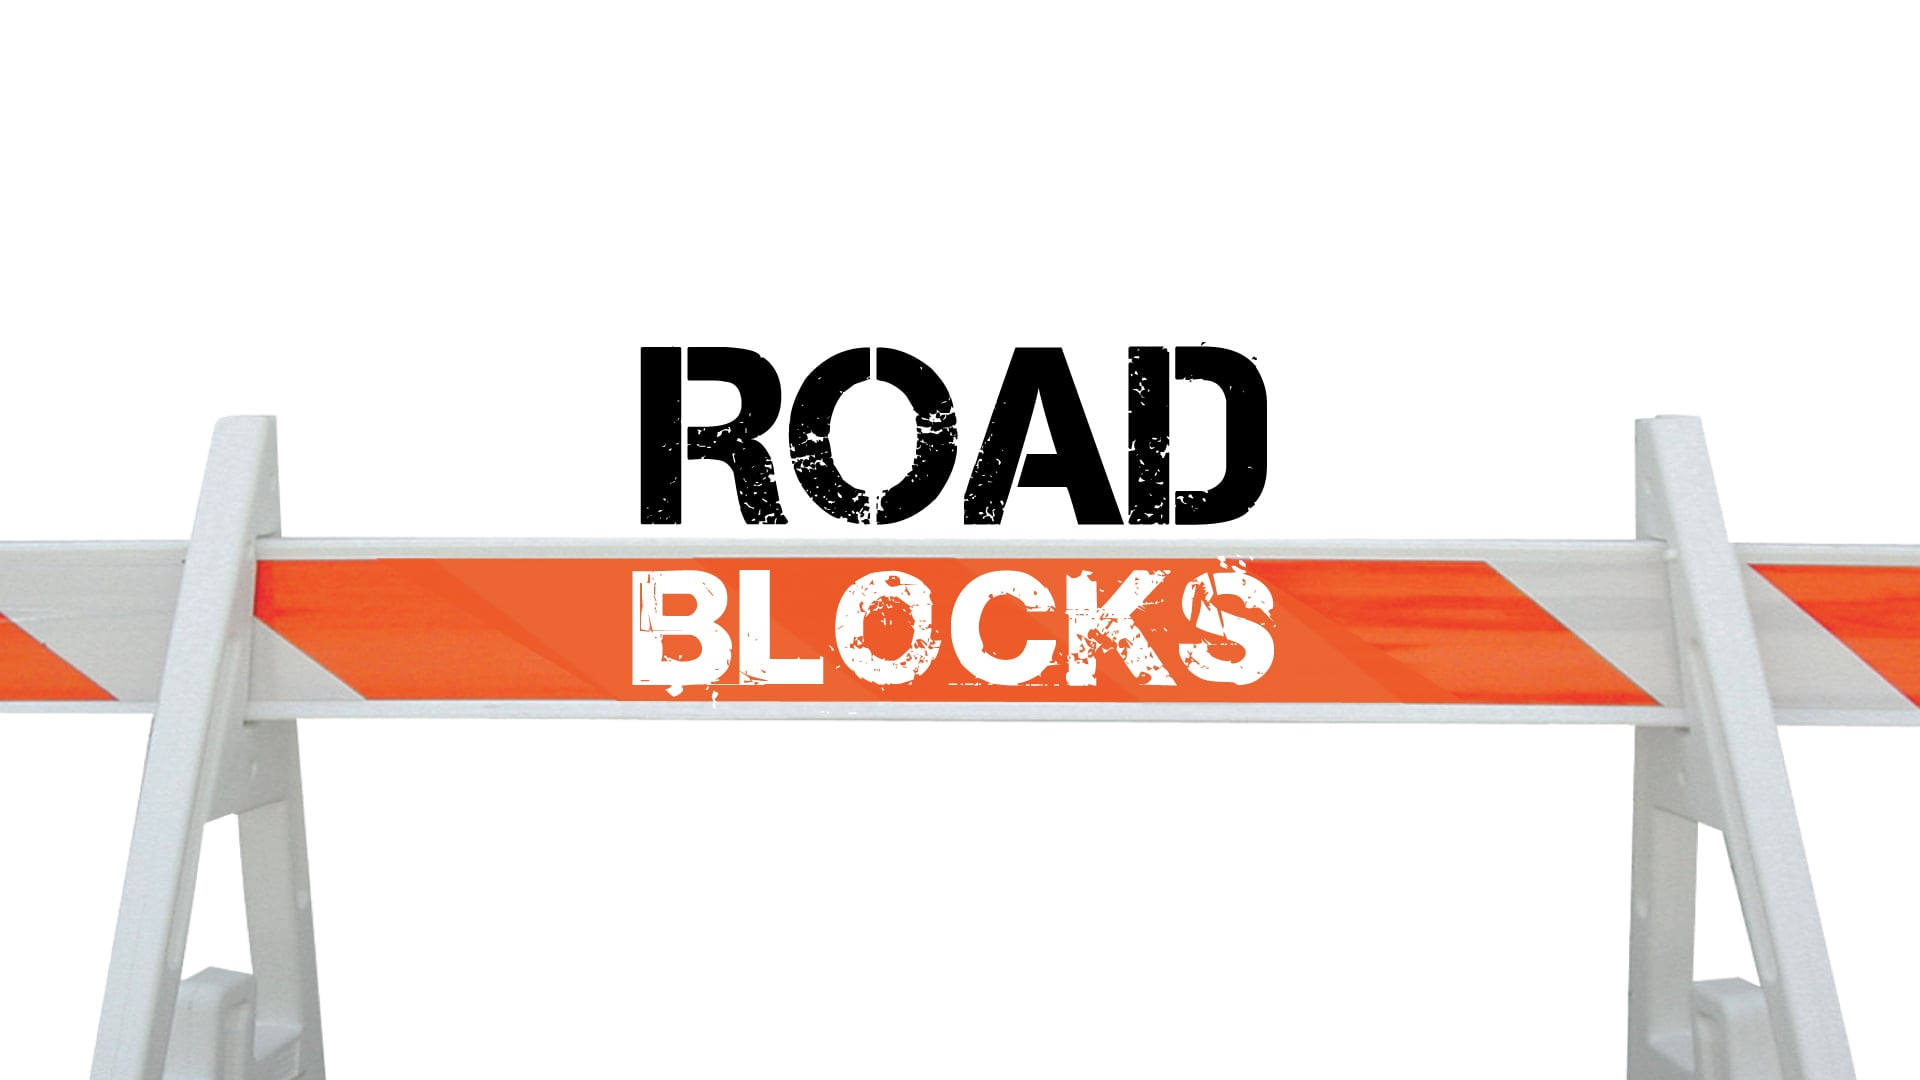 The Rock Church of Fenton, Lake Fenton, Linden, and Byron, Michigan exists to preach the Word of God, Baptize, and Disciple Road blocks from God